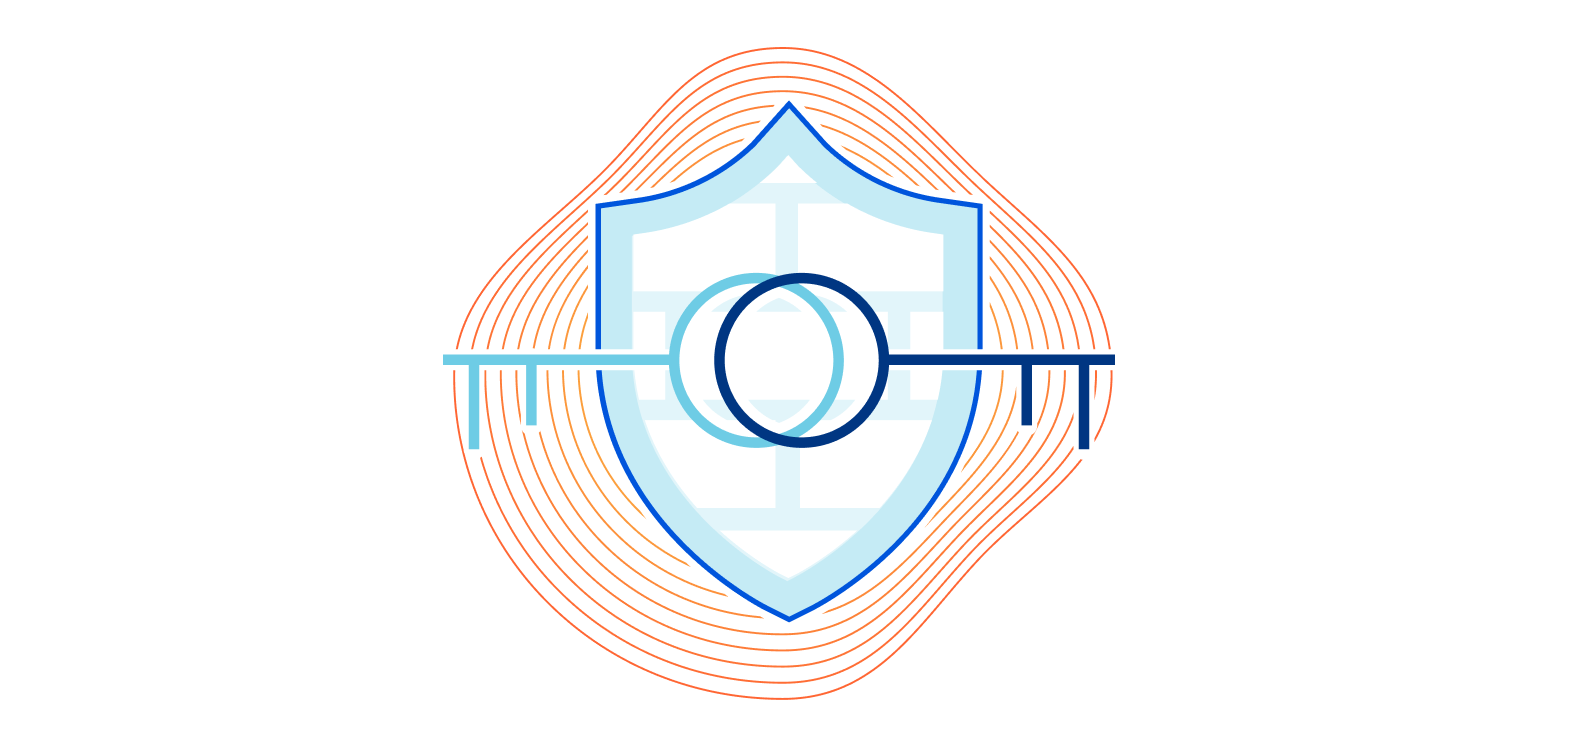 Enable secure access to applications with Cloudflare WAF and Azure Active Directory